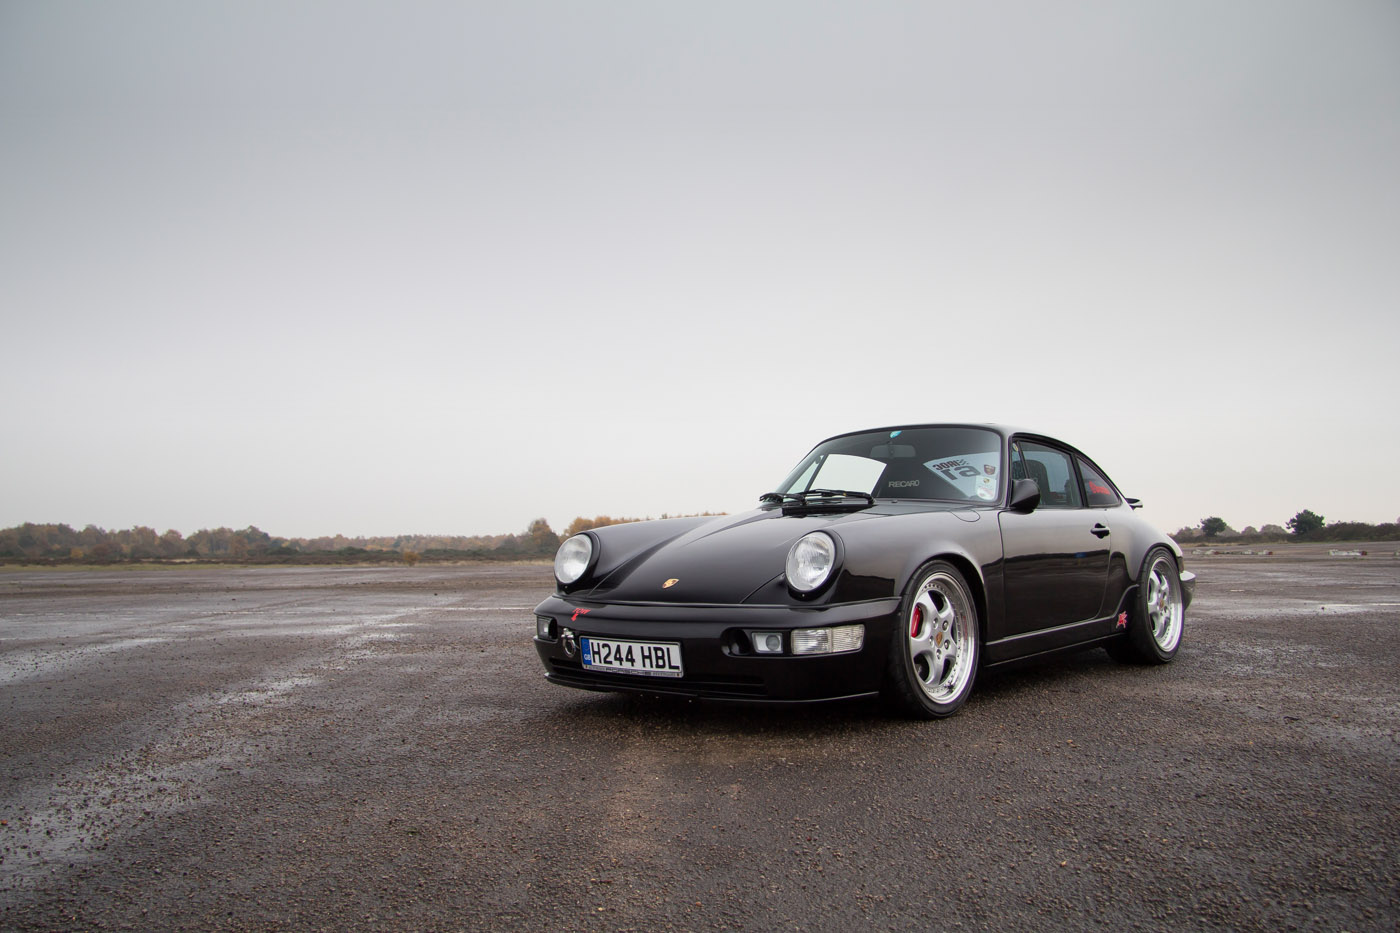 I Want To Believe Wallpaper Iphone Porsche 964 Allows For Fast Escape Petrolicious